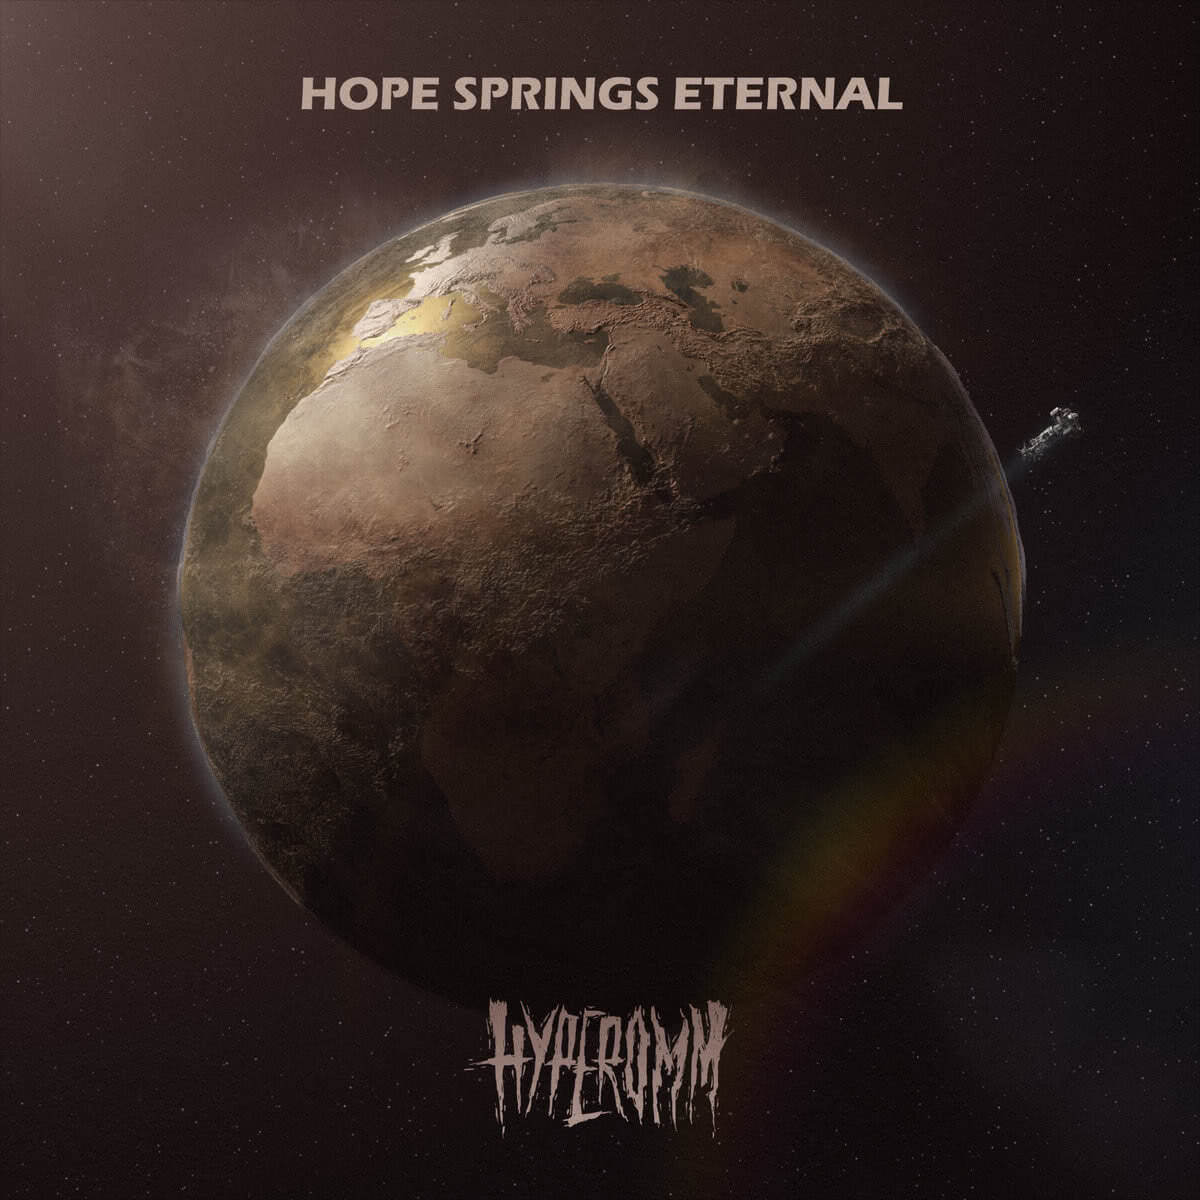 Hyperomm - Hope Springs Eternal (2021) скачать